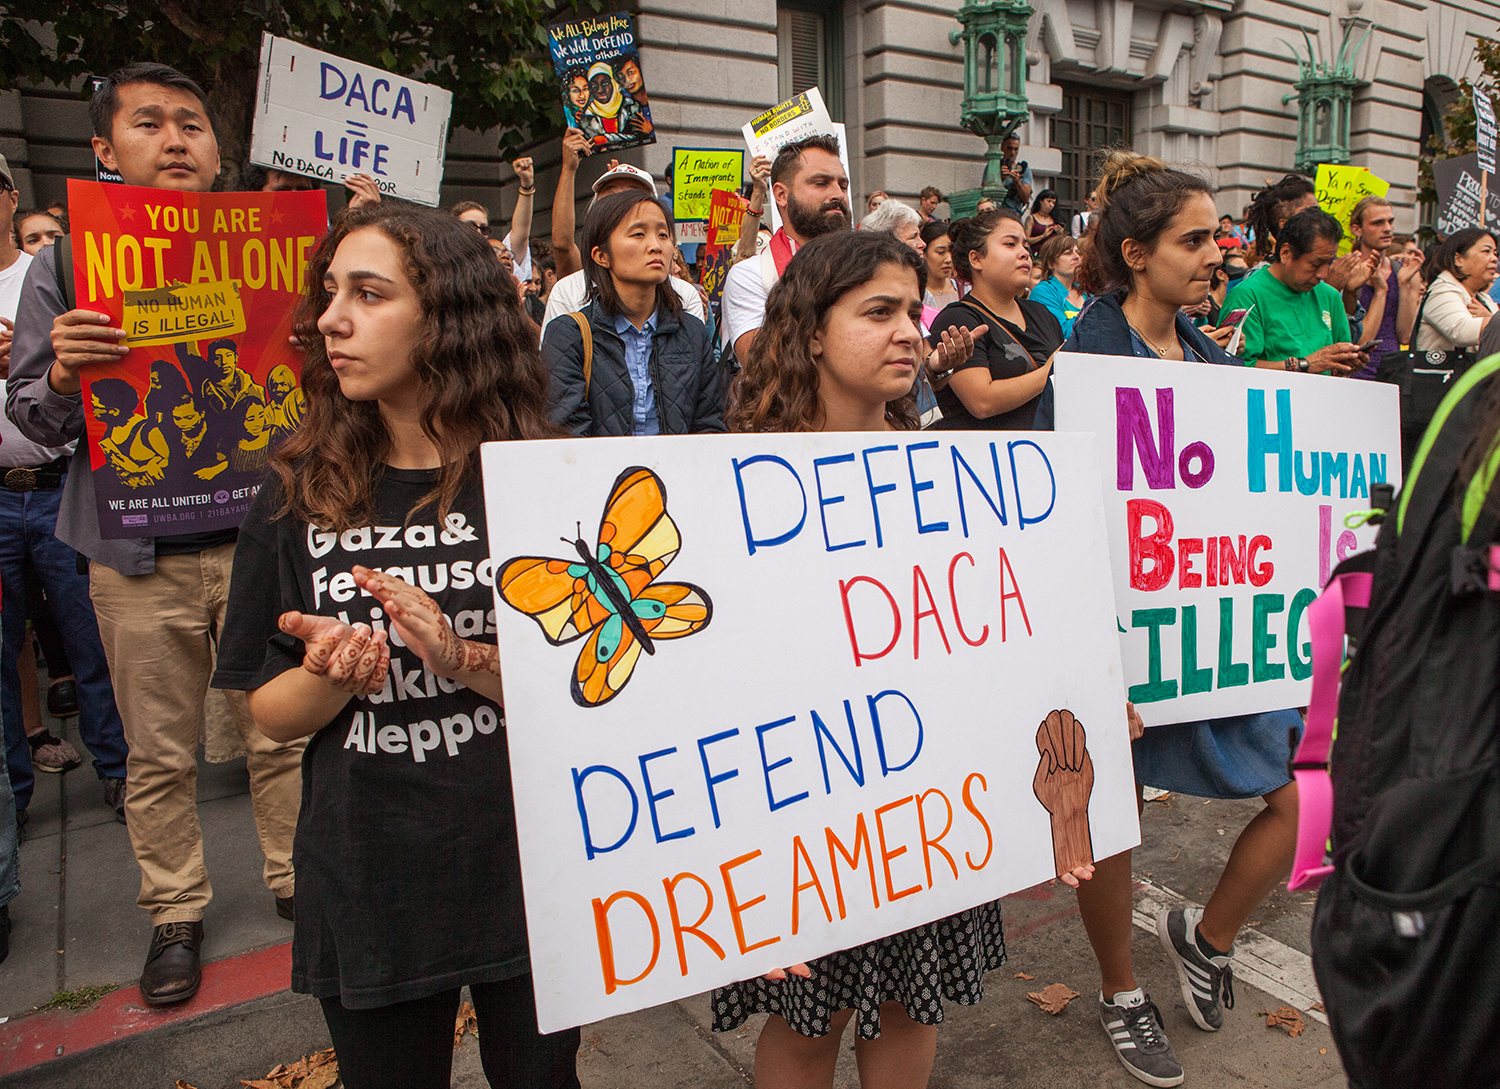 Dreamers rallying for DACA in San Francisco (Source: Wikipedia)